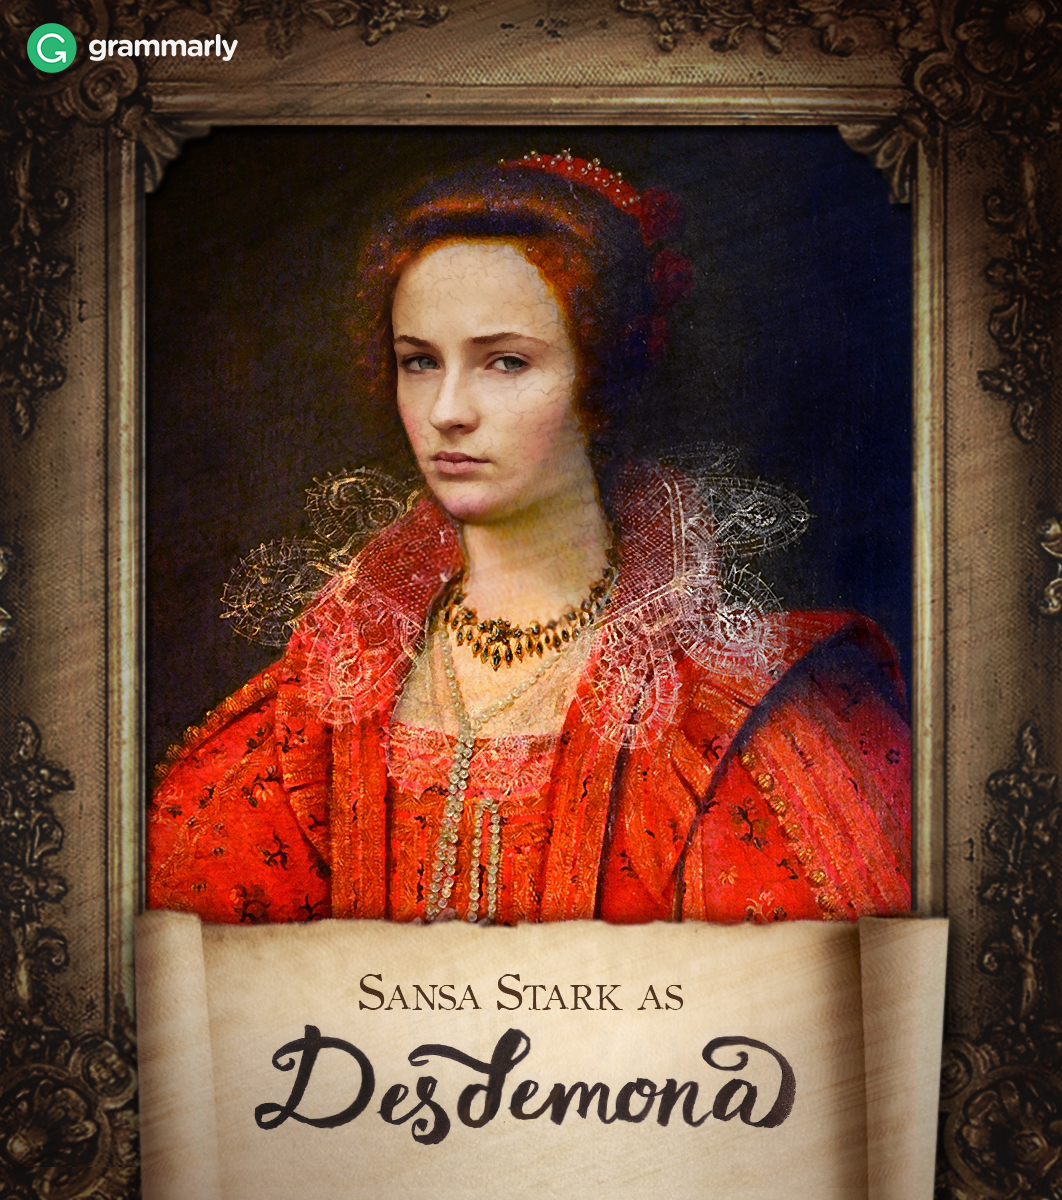 desdemona and lady macbeth In macbeth's quest for power, he gains a flaw that ends in a deteriorated relationship with lady macbeth, and his eventual defeat shakespeare's tragedy othello, written in 1604, is based on a tale that circulated in books at that time.